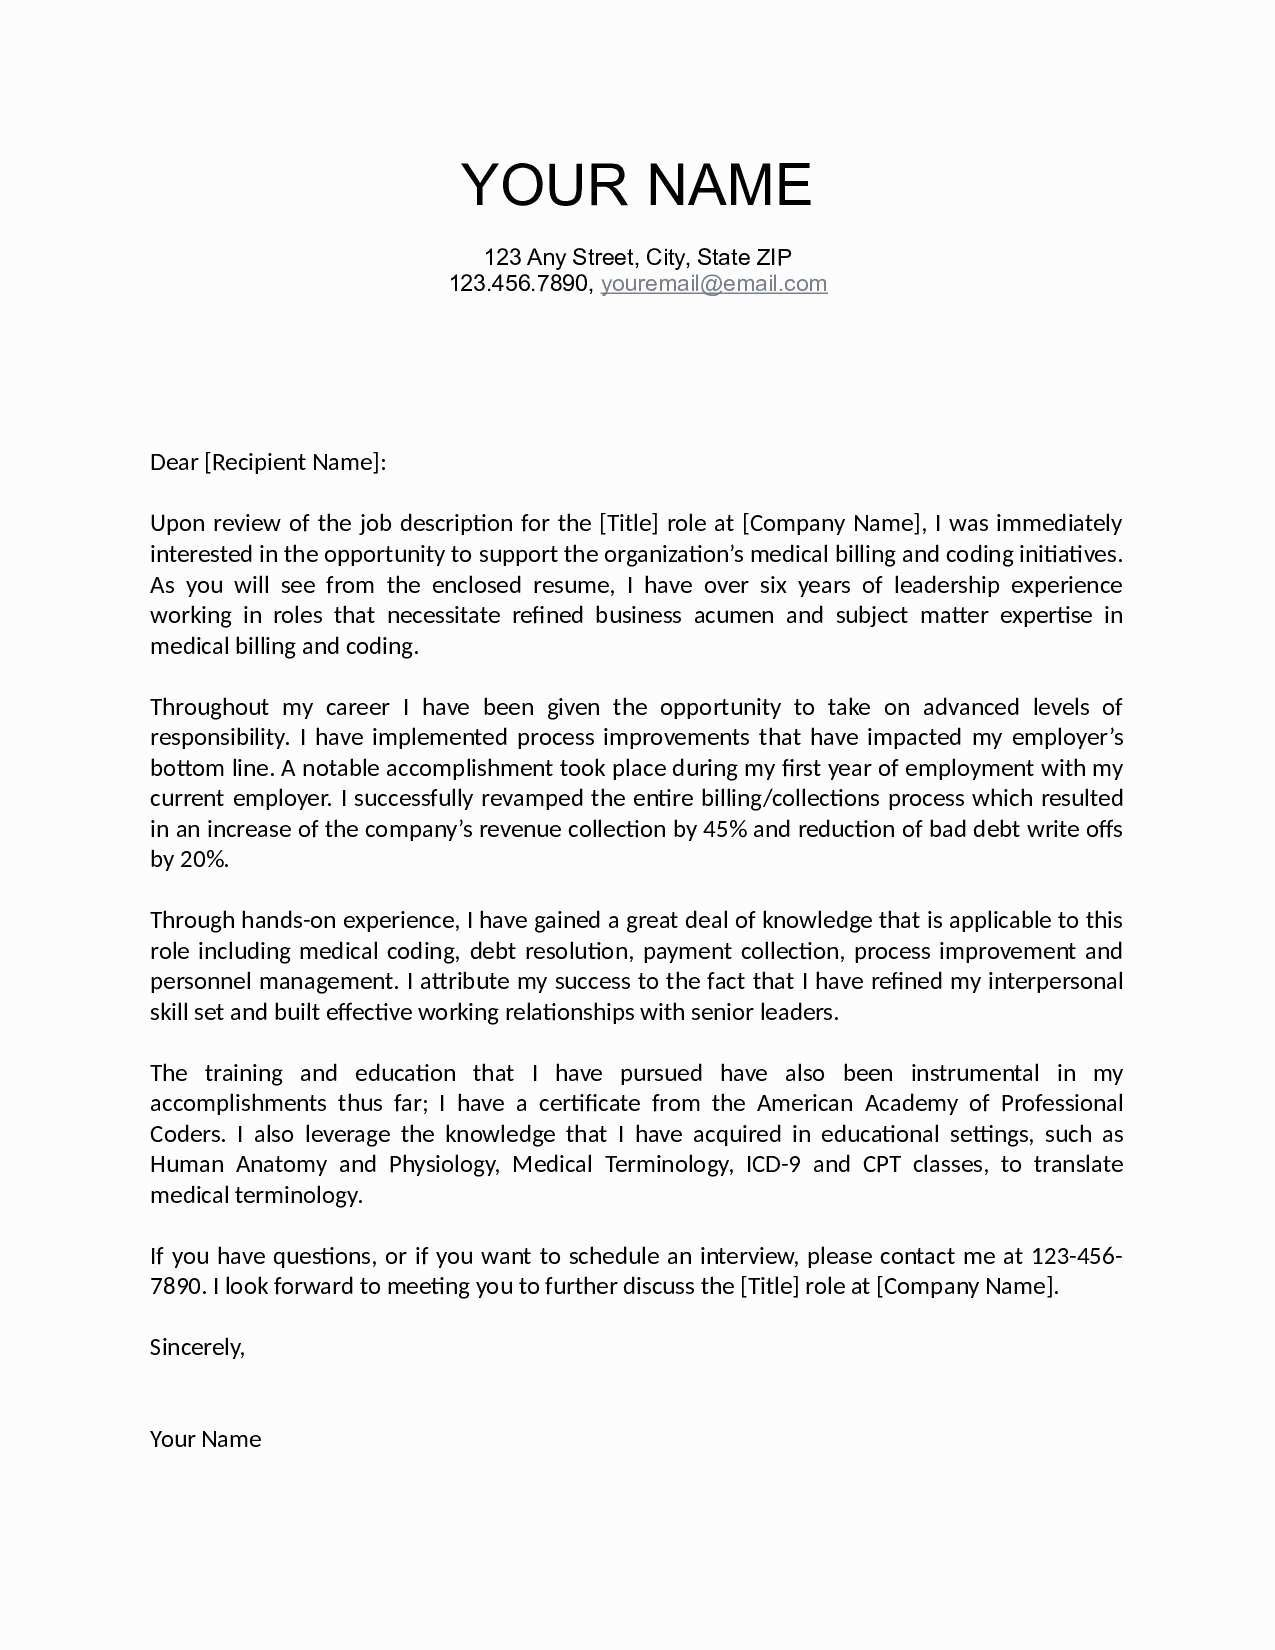 Letter Of Inquiry Template - Letter Inquiry for A Job Opening Refrence Lovely Job Fer Letter